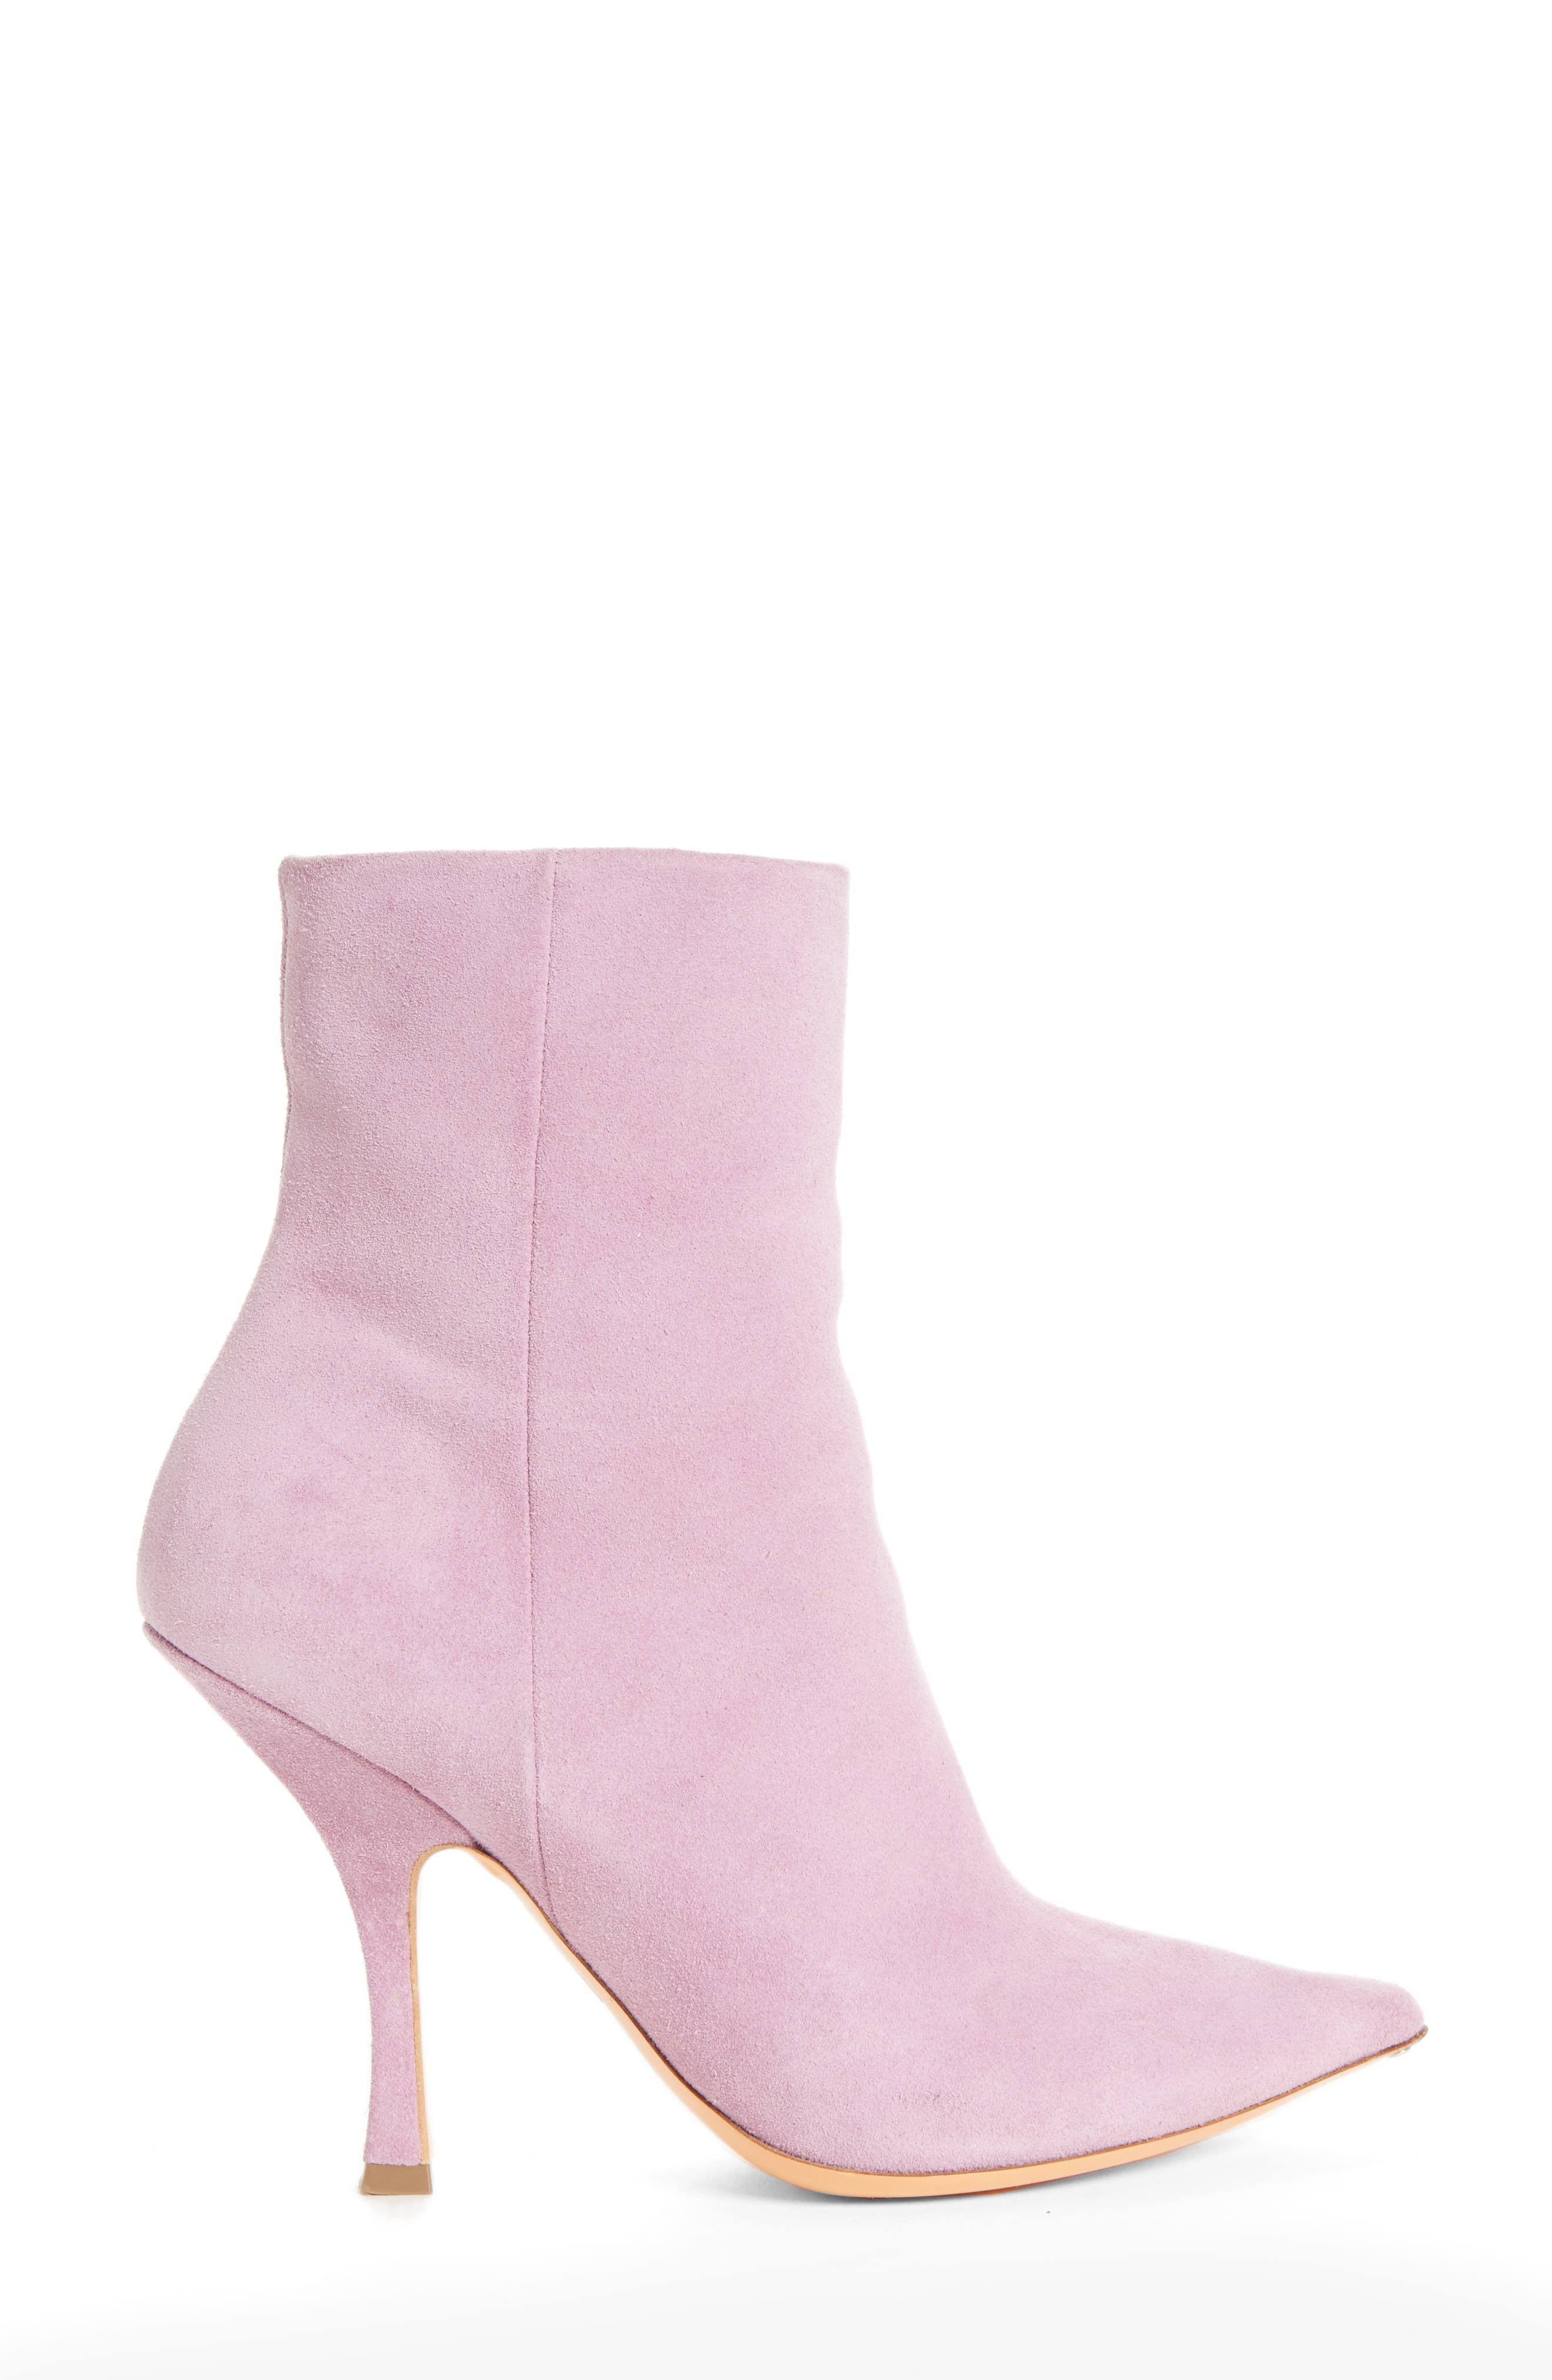 Suede Ankle Boot,                             Alternate thumbnail 3, color,                             500